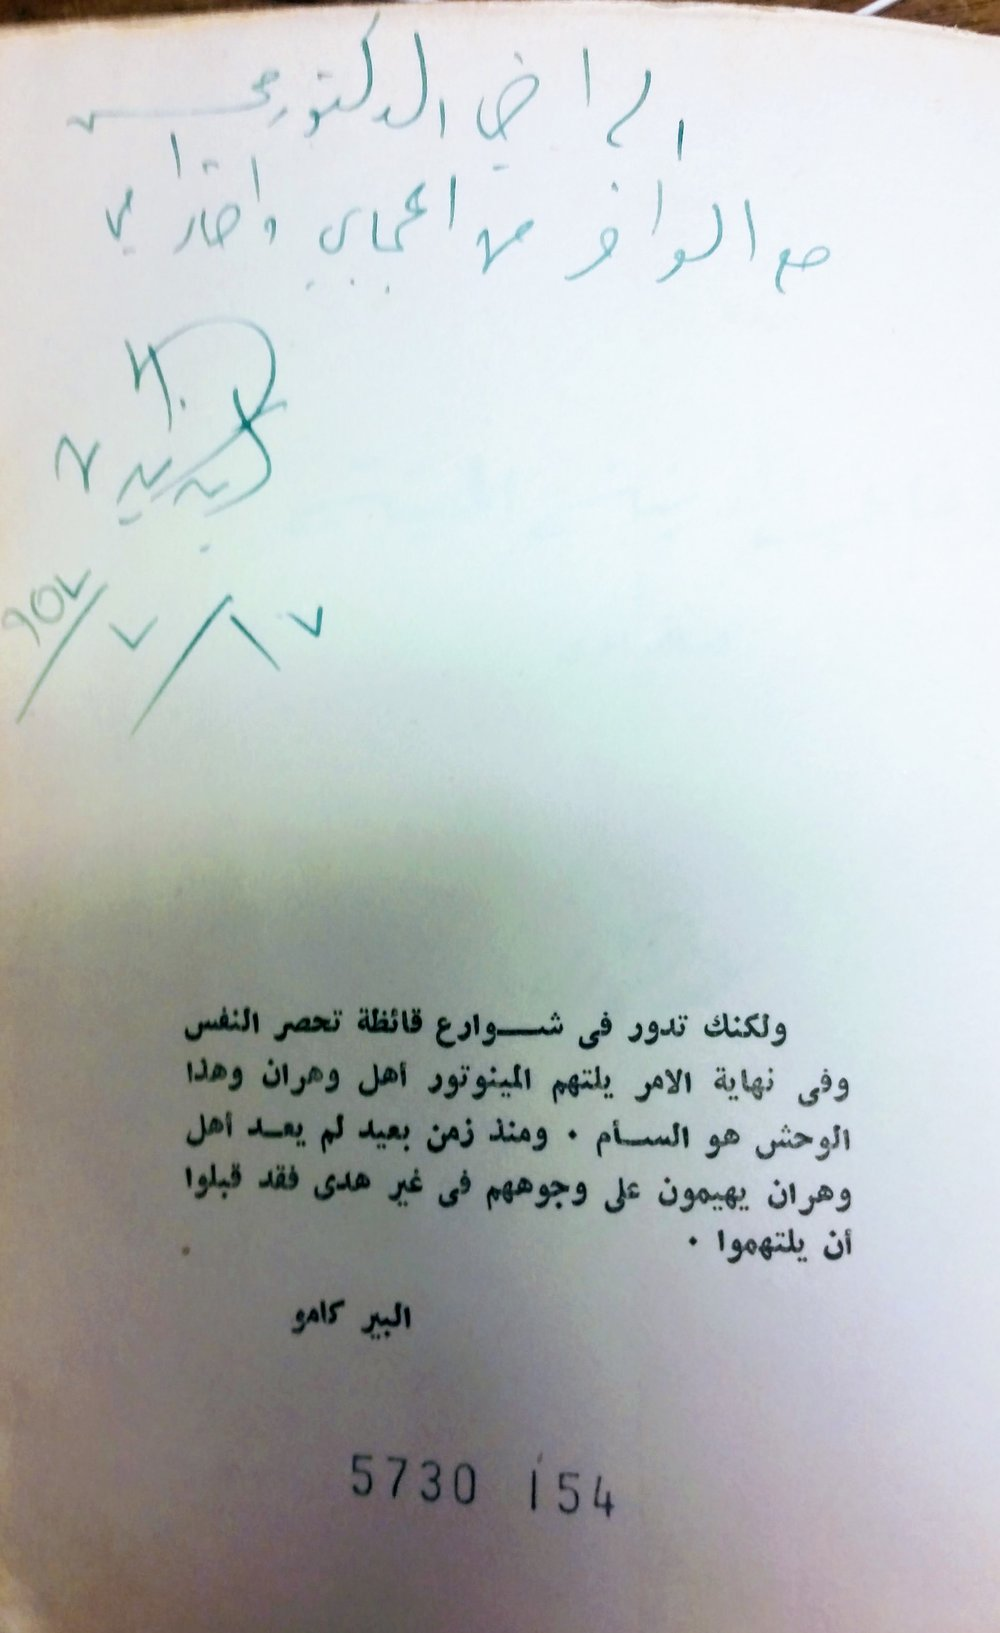 """To my brother, Dr. Muḥsin..."" Inspired by the existential philosophy popular in Baghdad at the time, the collection opens with a long quote from Albert Camus, at the bottom of the page."